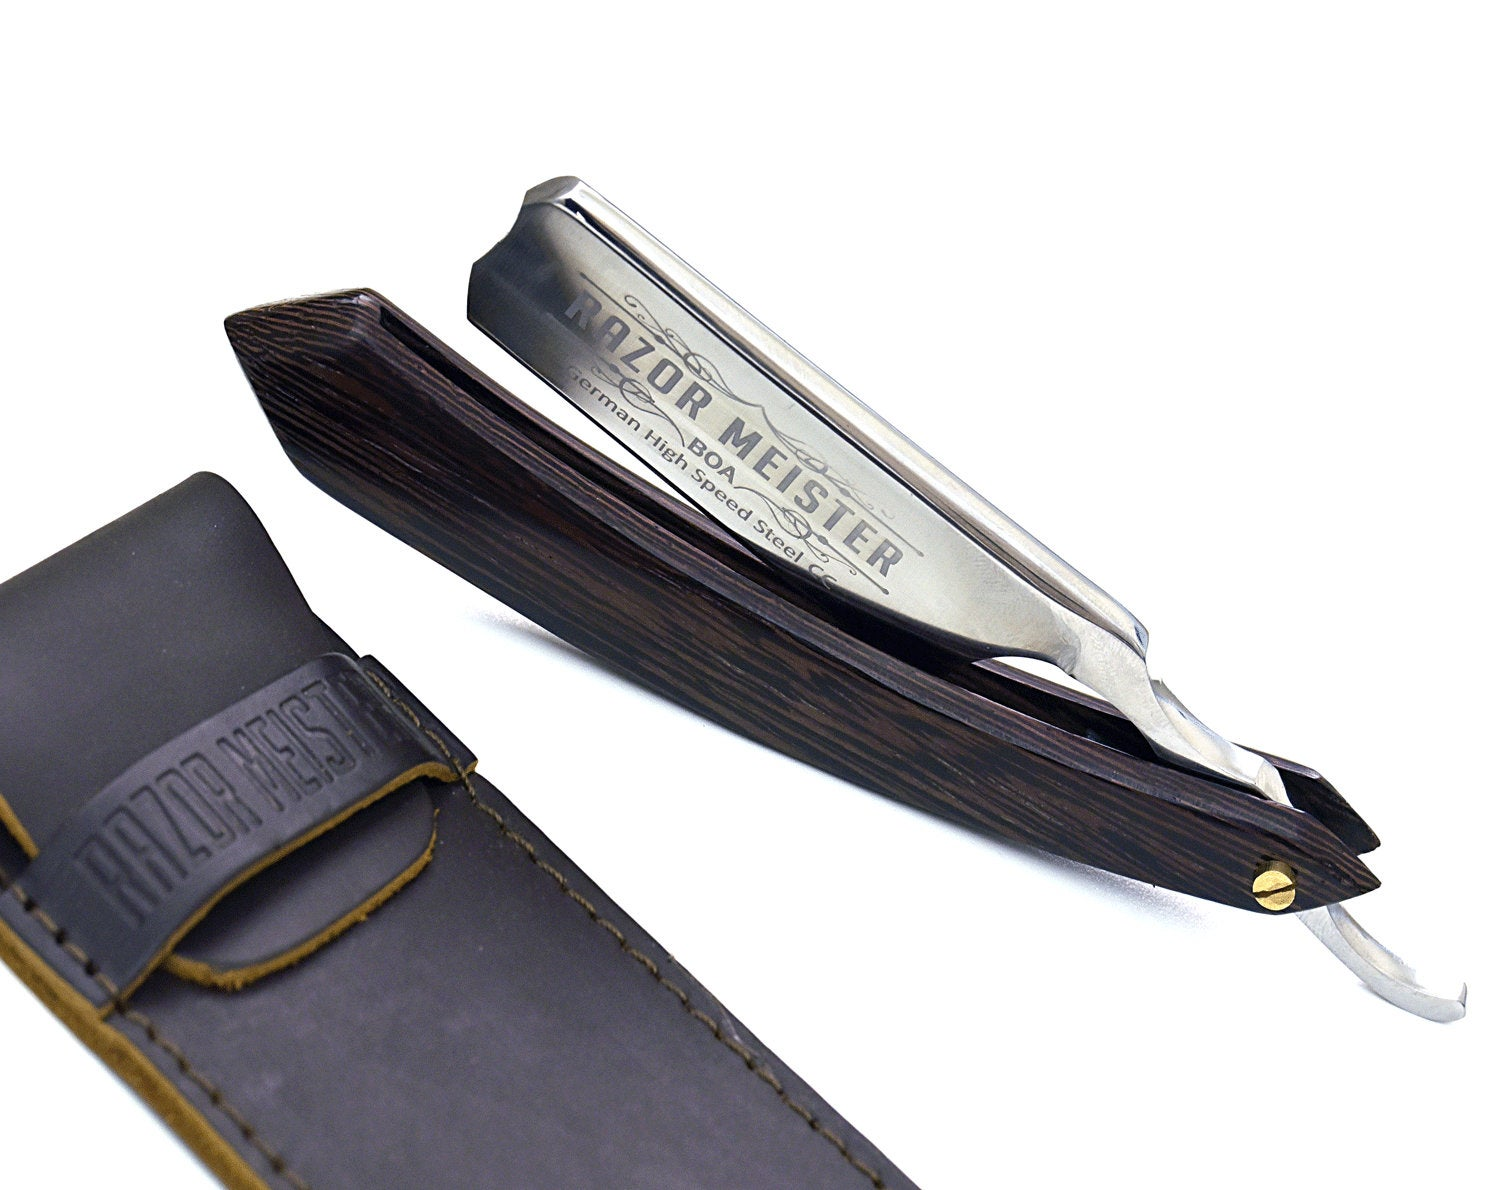 Personalize Straight Razor By B&B/German high speed steel/Wenge wood handle/Shaving Razor/straight edge razor cutthroat Gift - SHOKUNIN USA